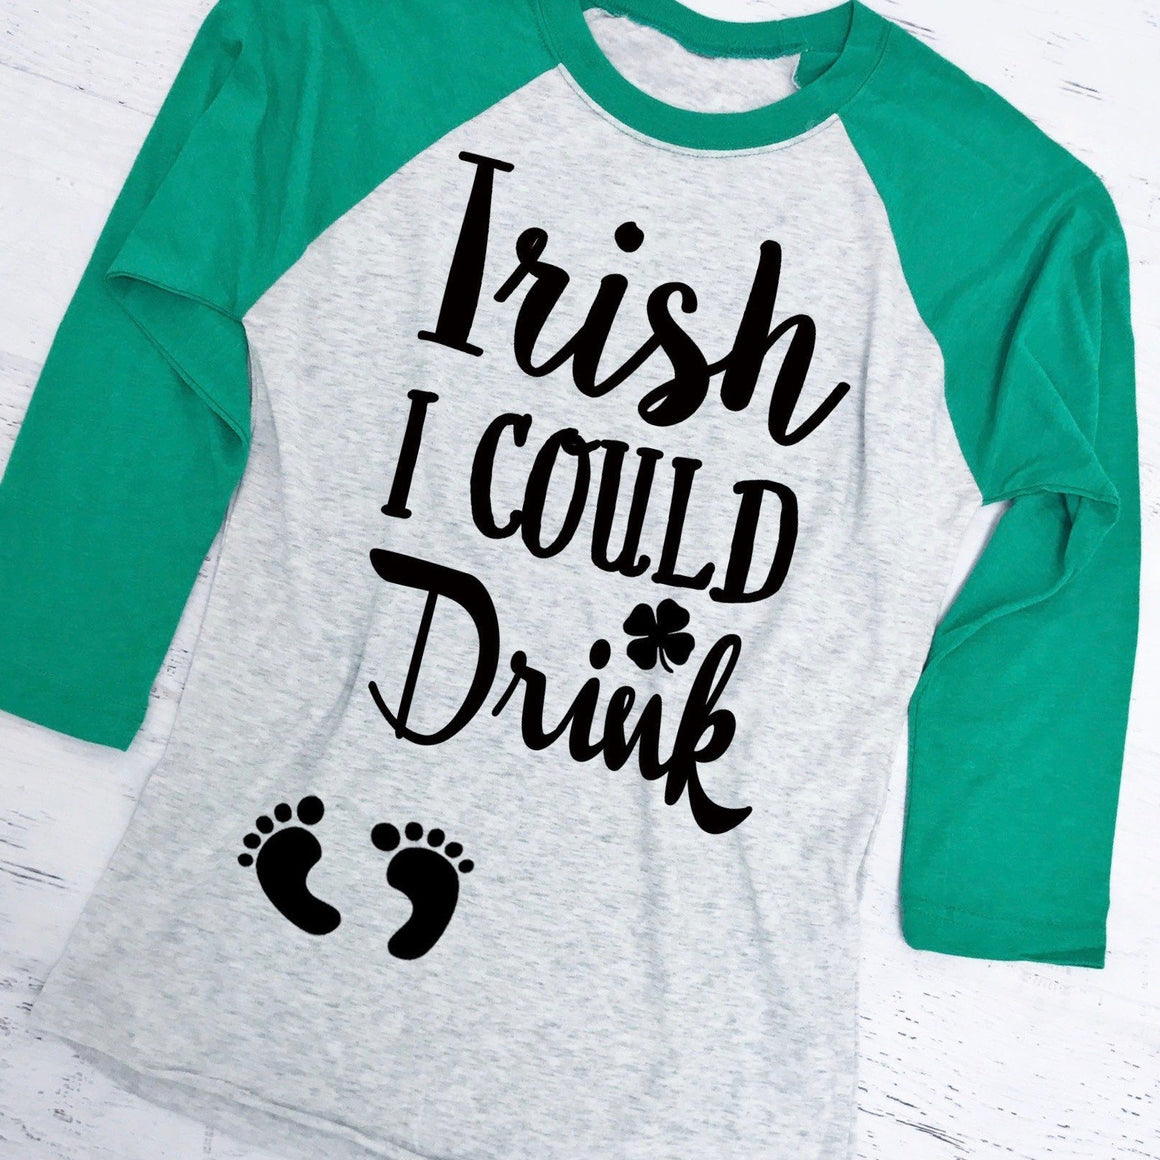 Irish I Could Drink® - Strong Confident You